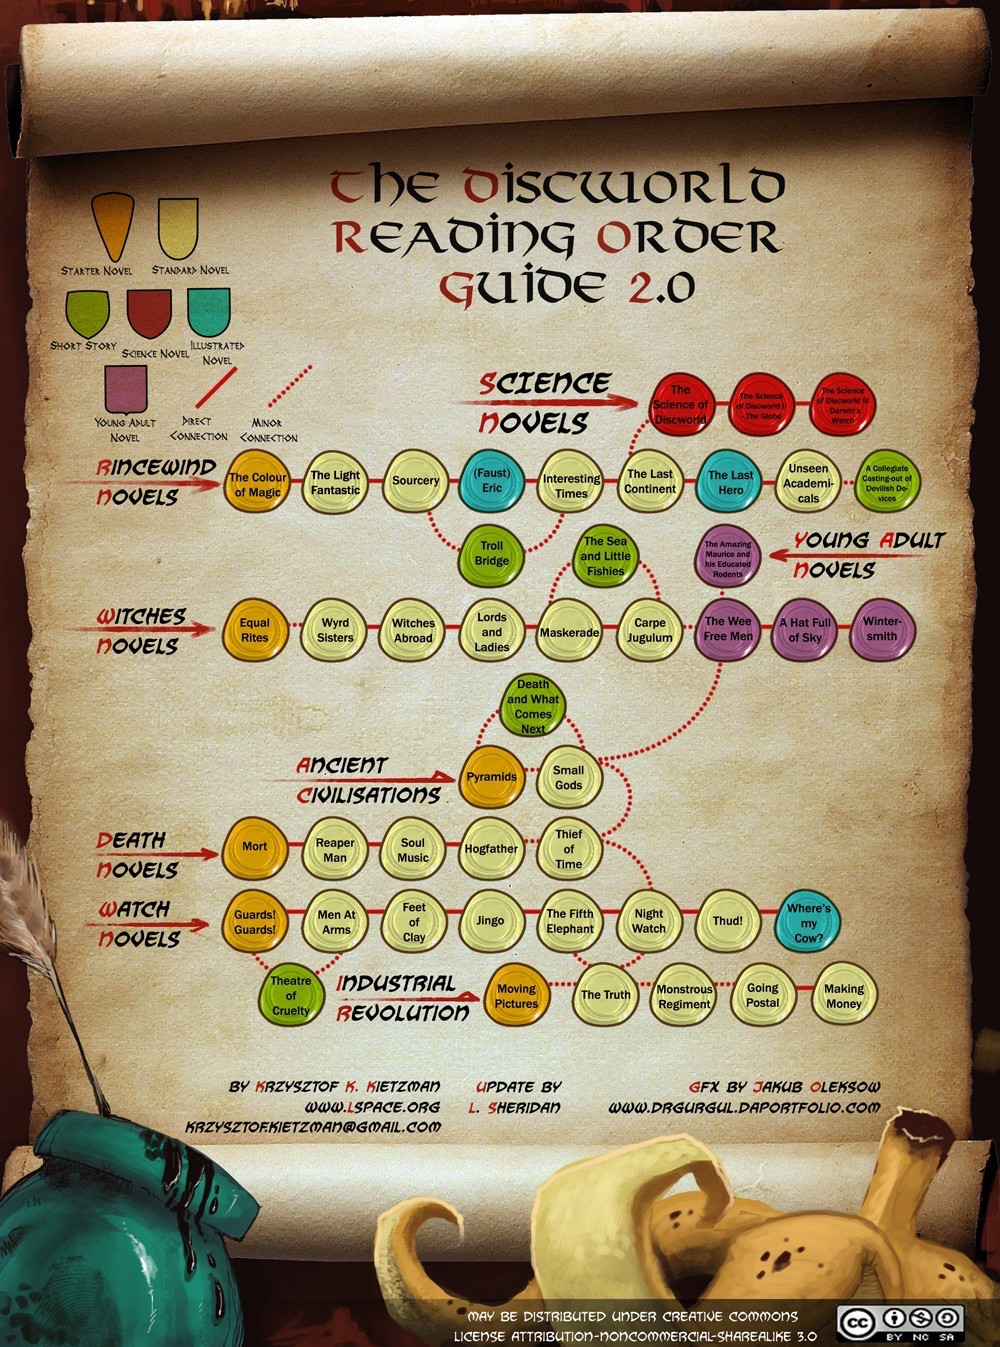 discworld-reading-order-guide-2.0